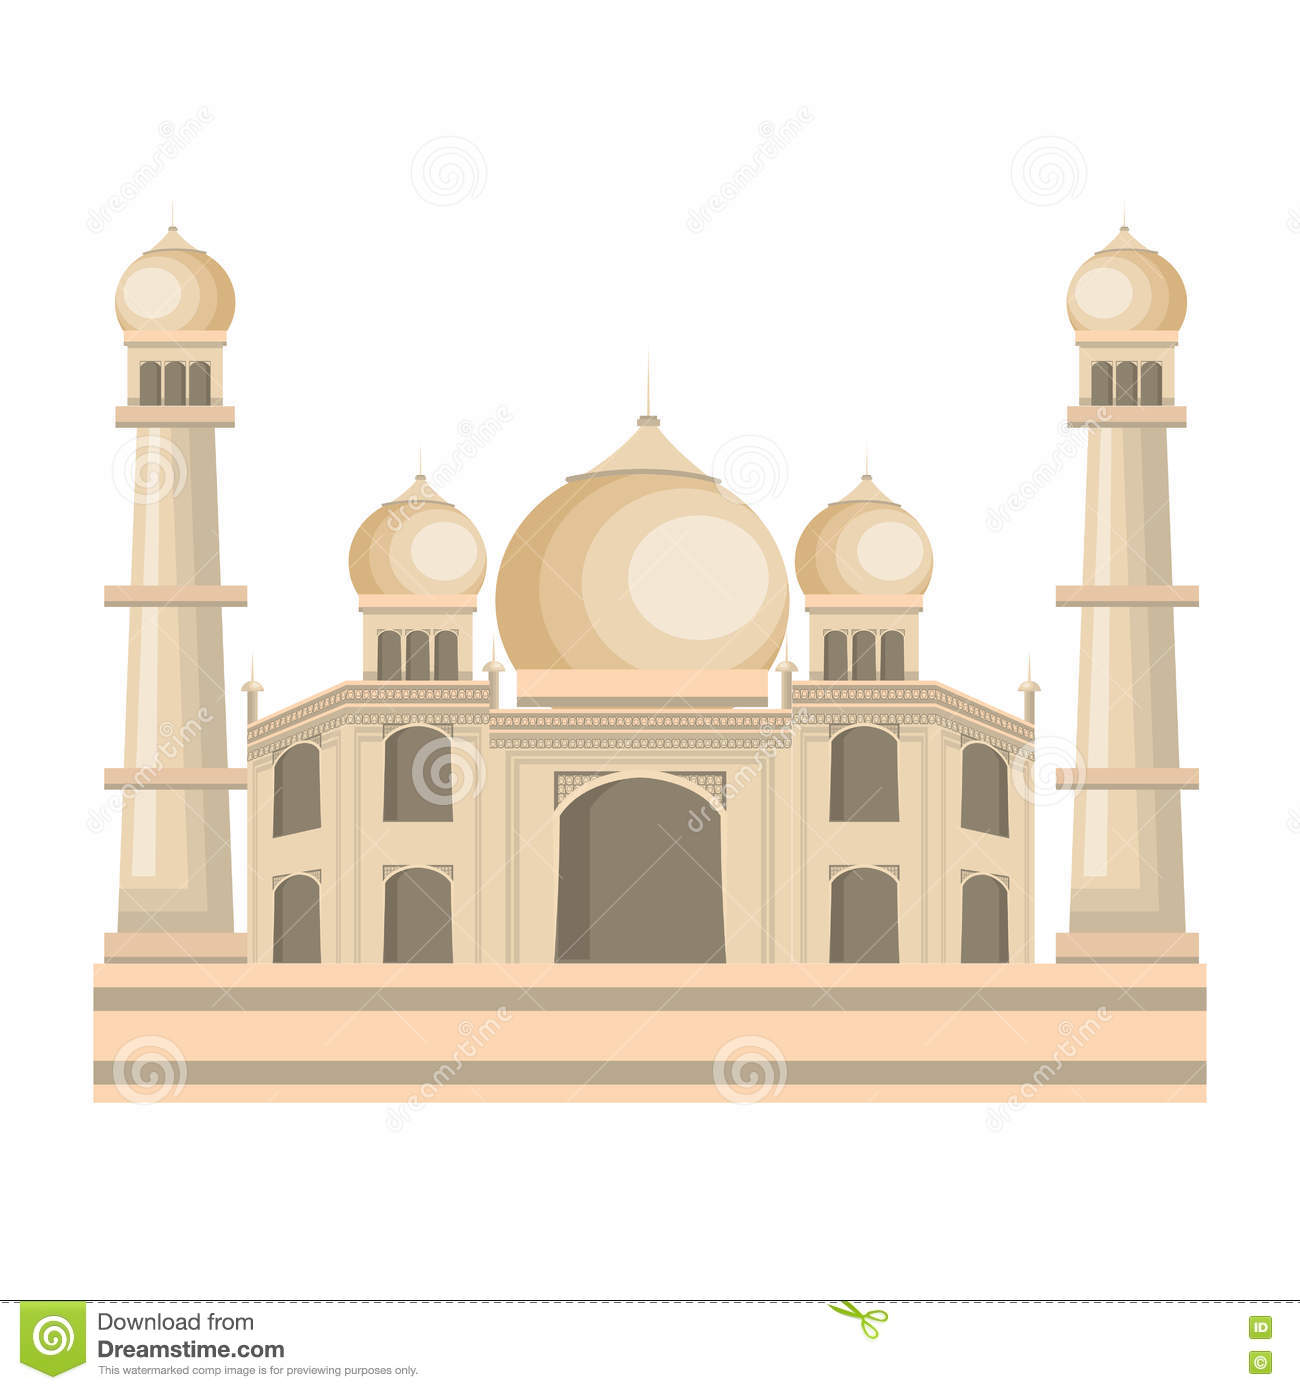 Taj mahal in india vector sketch vector illustration for Taj mahal exterior design